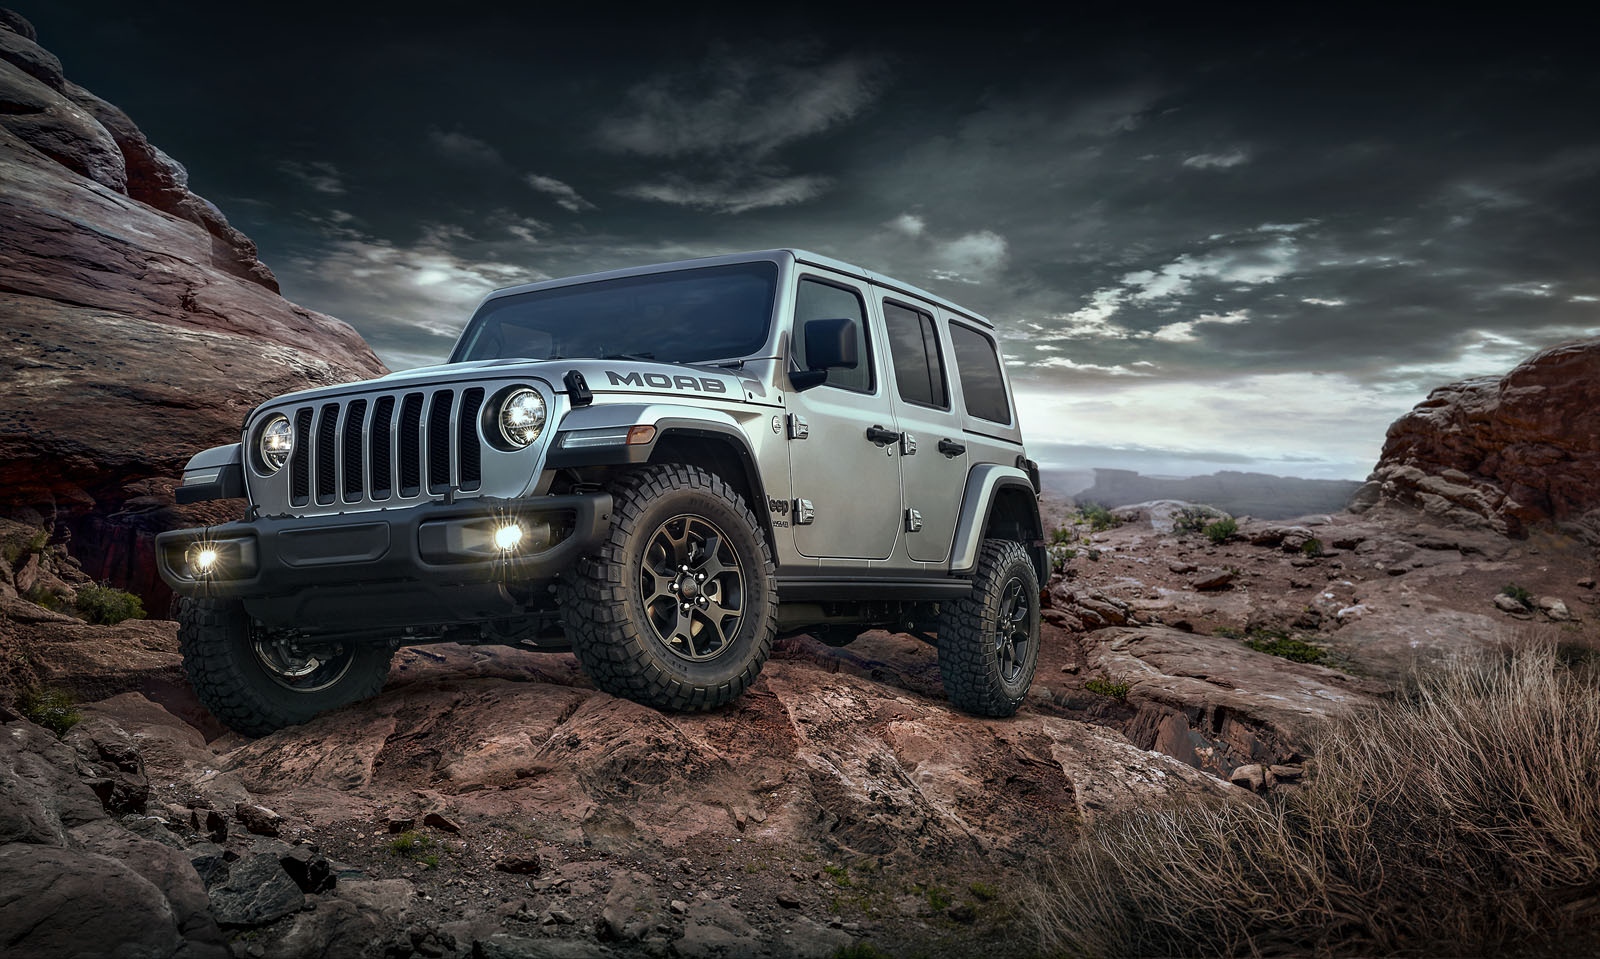 2018 Jeep Wrangler Moab Edition: First Limited Edition JL ...